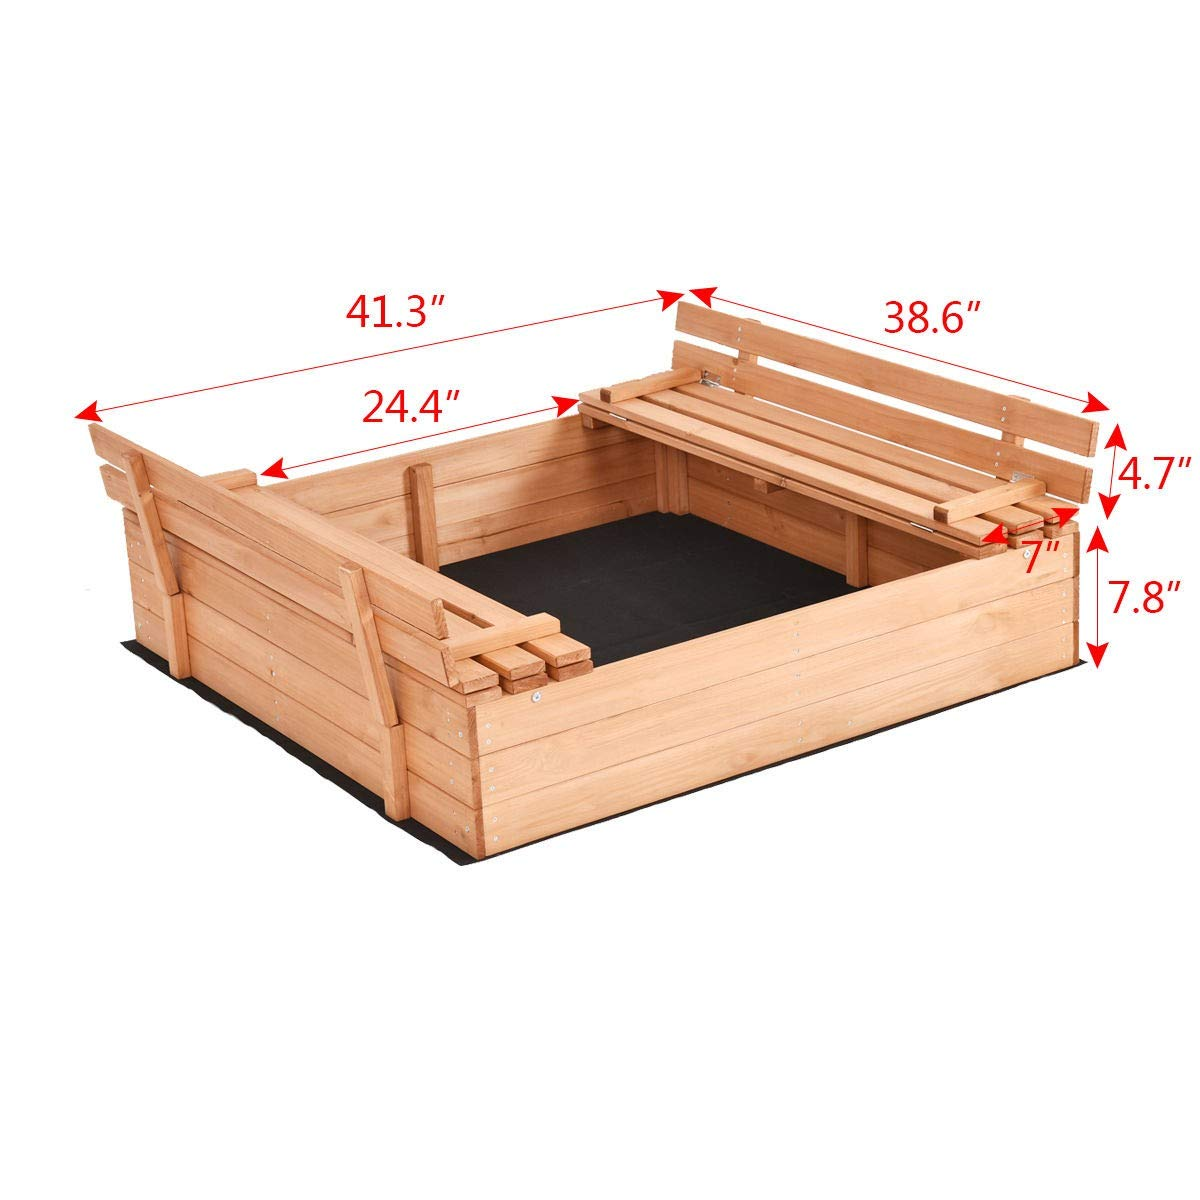 USA_BEST_SELLER Children Outdoor Foldable Retractable Sandbox Bench Seat Box by USA_BEST_SELLER (Image #8)